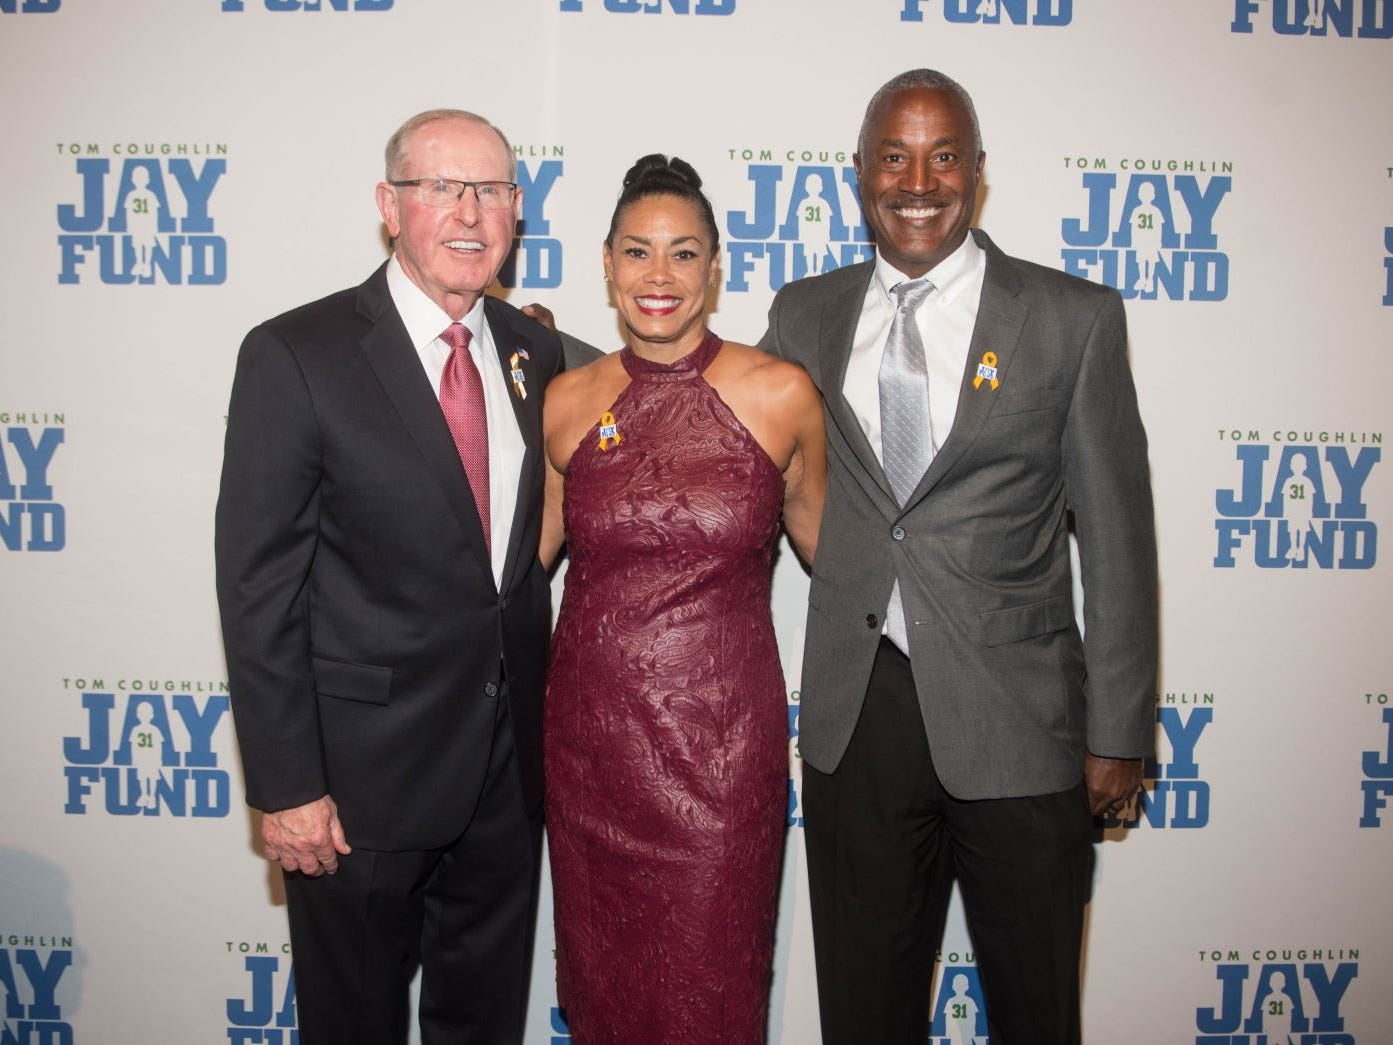 Tom Coughlin, Darlene Johnson and Craig Johnson. The 14th annual Jay Fund Champions for Children Gala was held at Cipriani 42nd Street. 09/21/2018